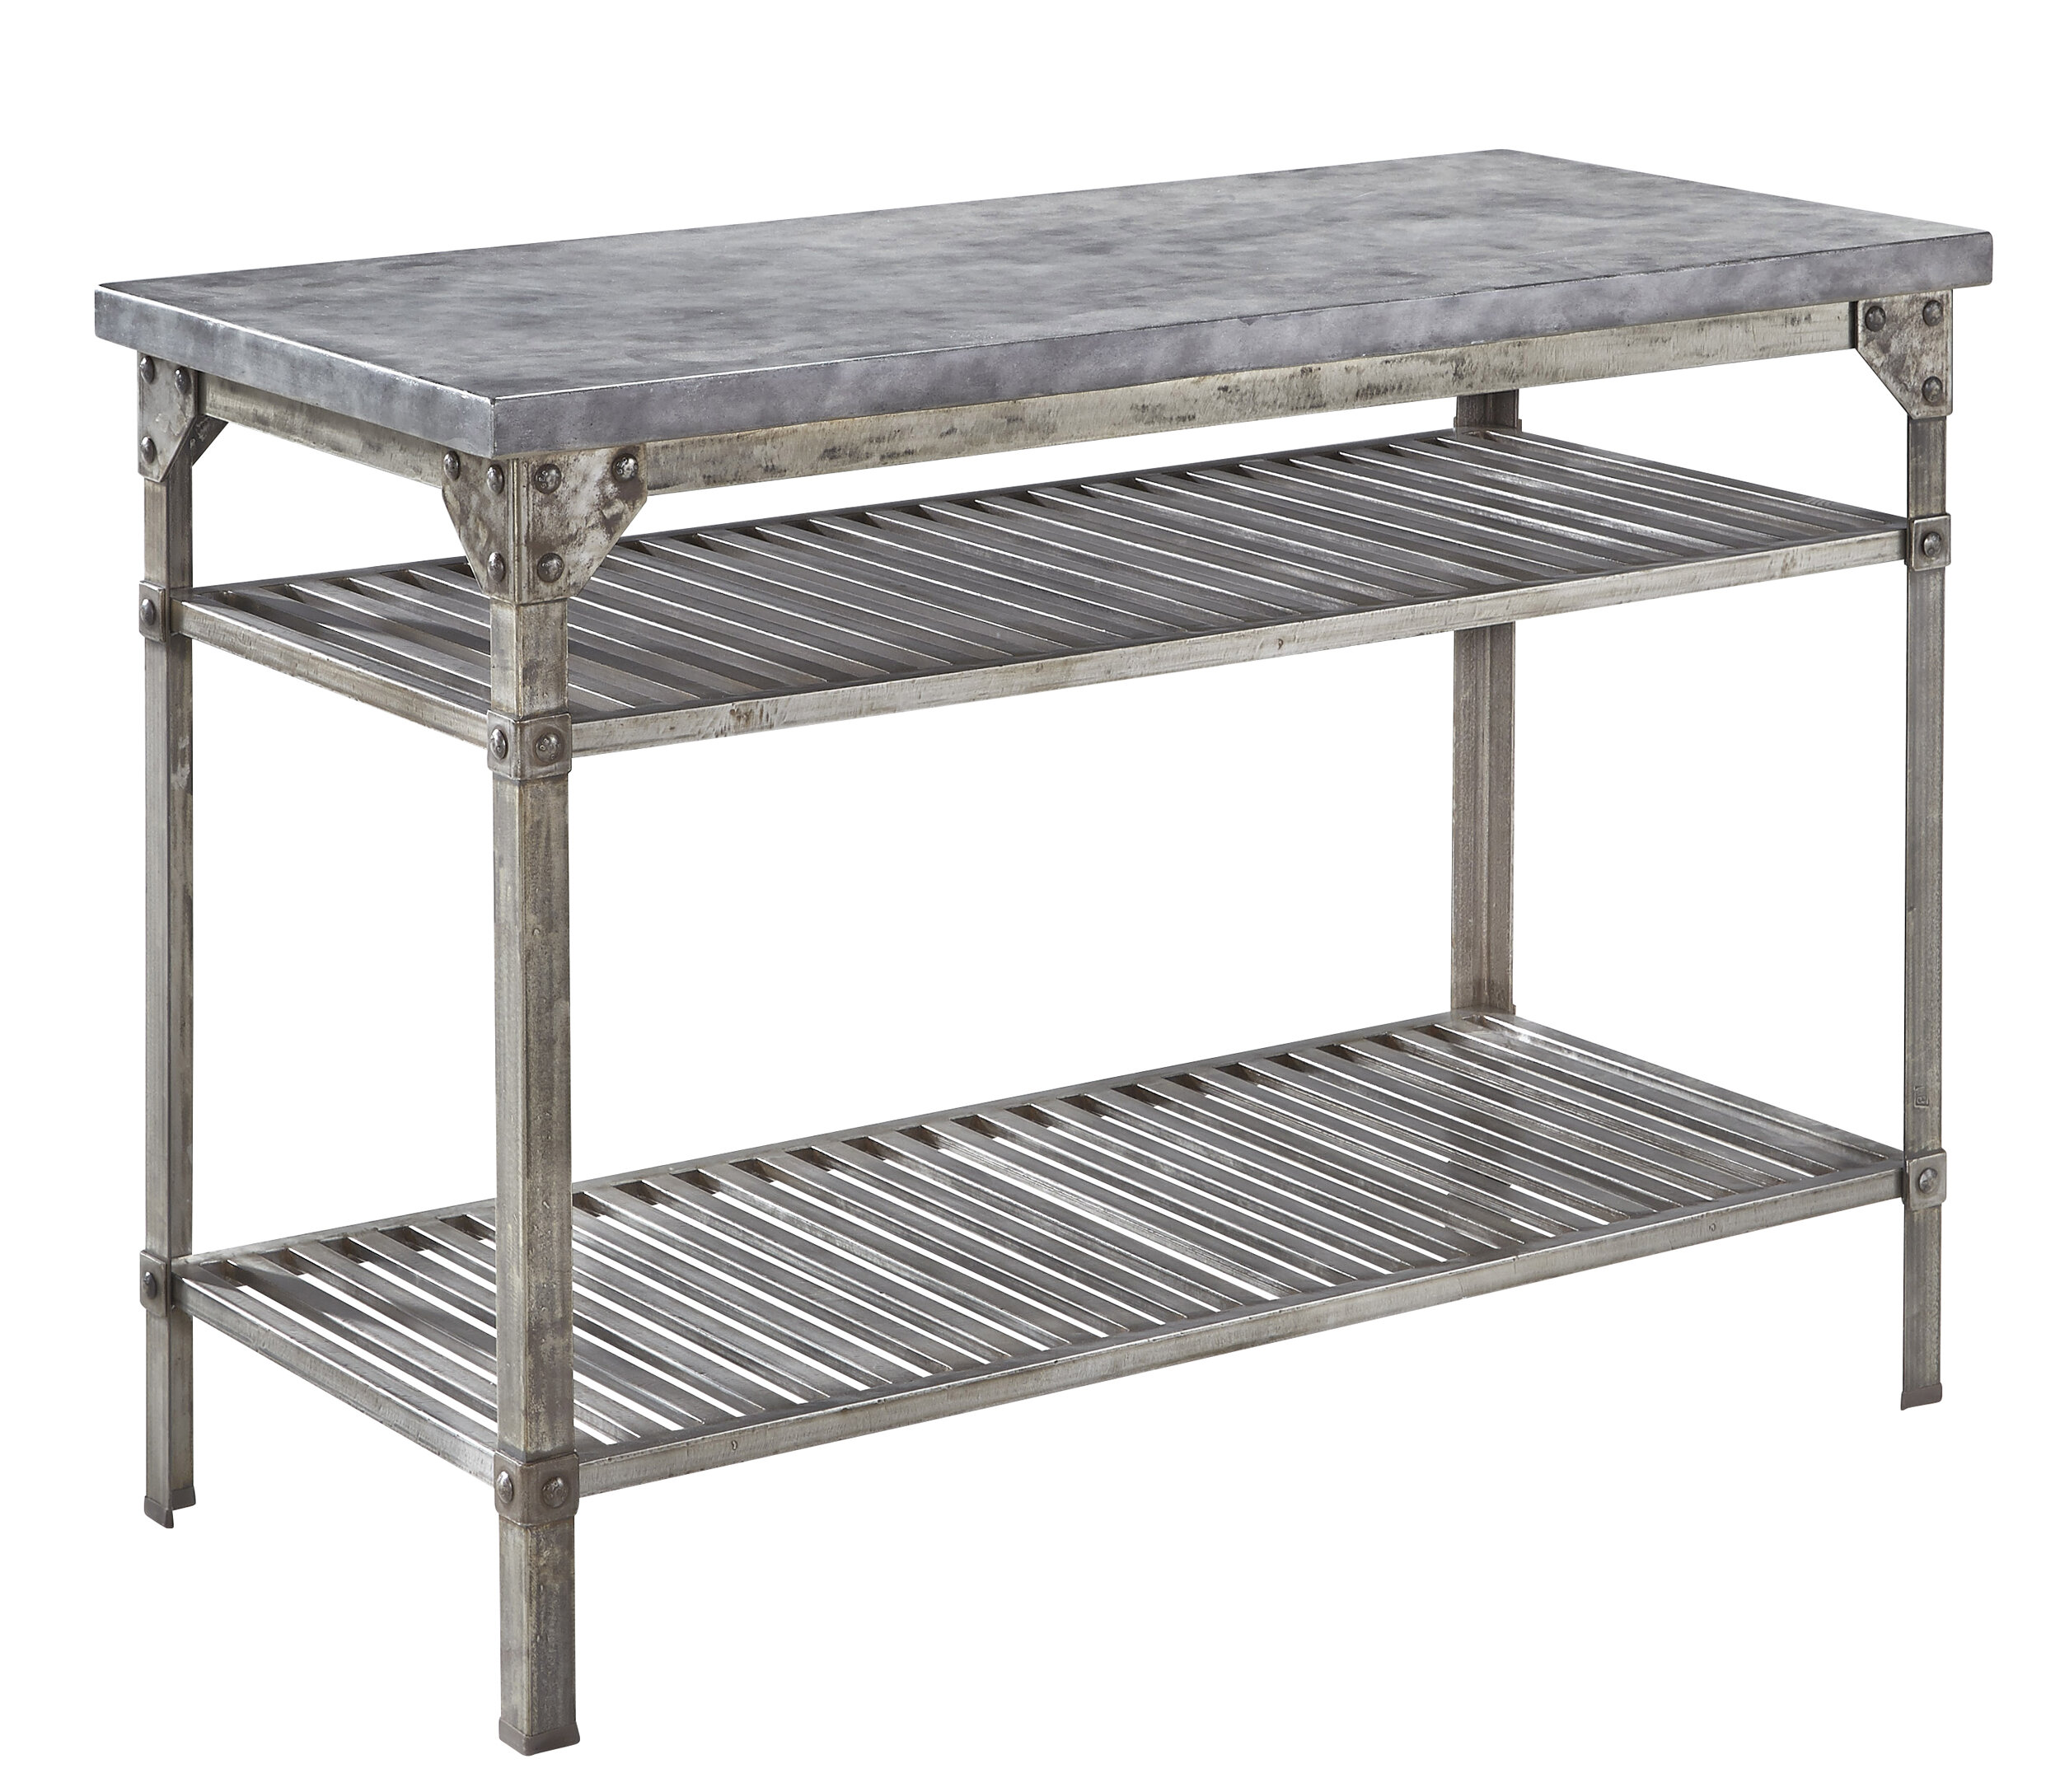 Home Styles Urban Style Prep Table with Concrete Top & Reviews